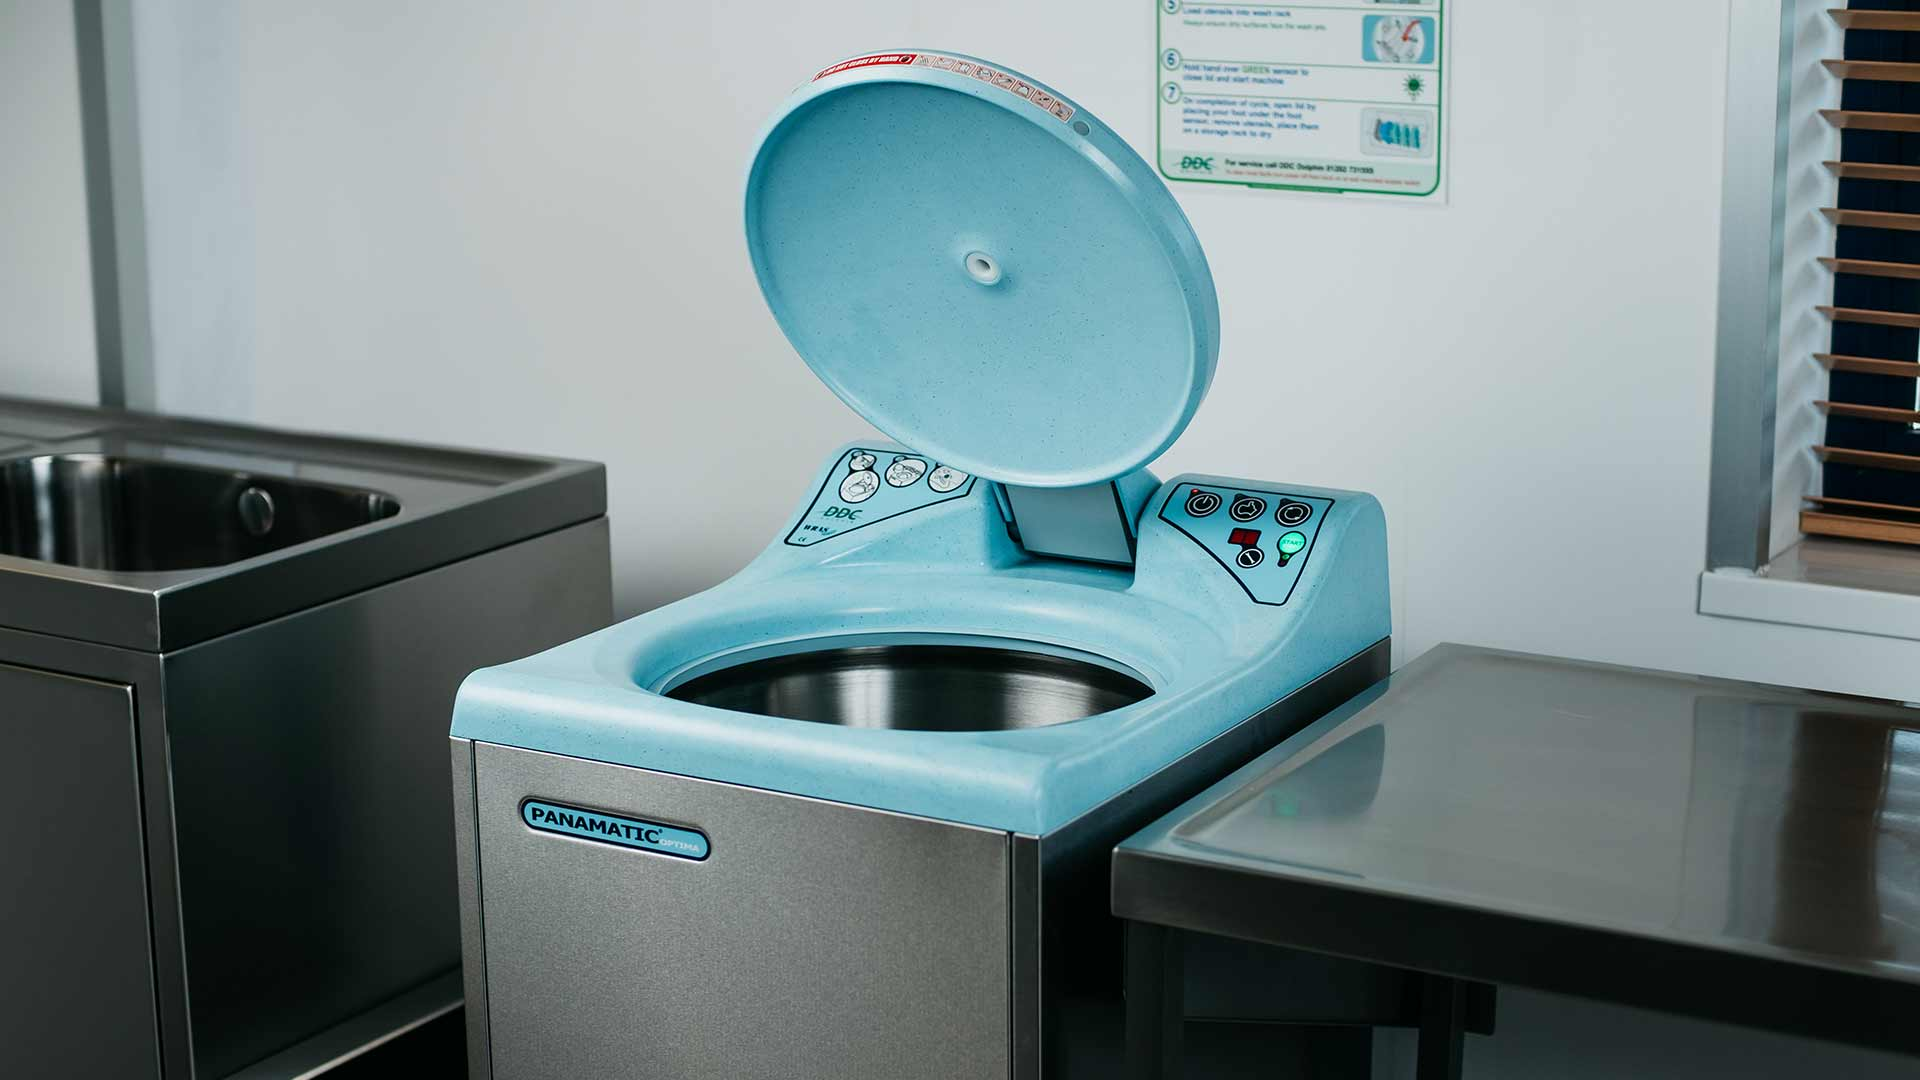 Panamatic Optima 2 Bedpan Washer Banner